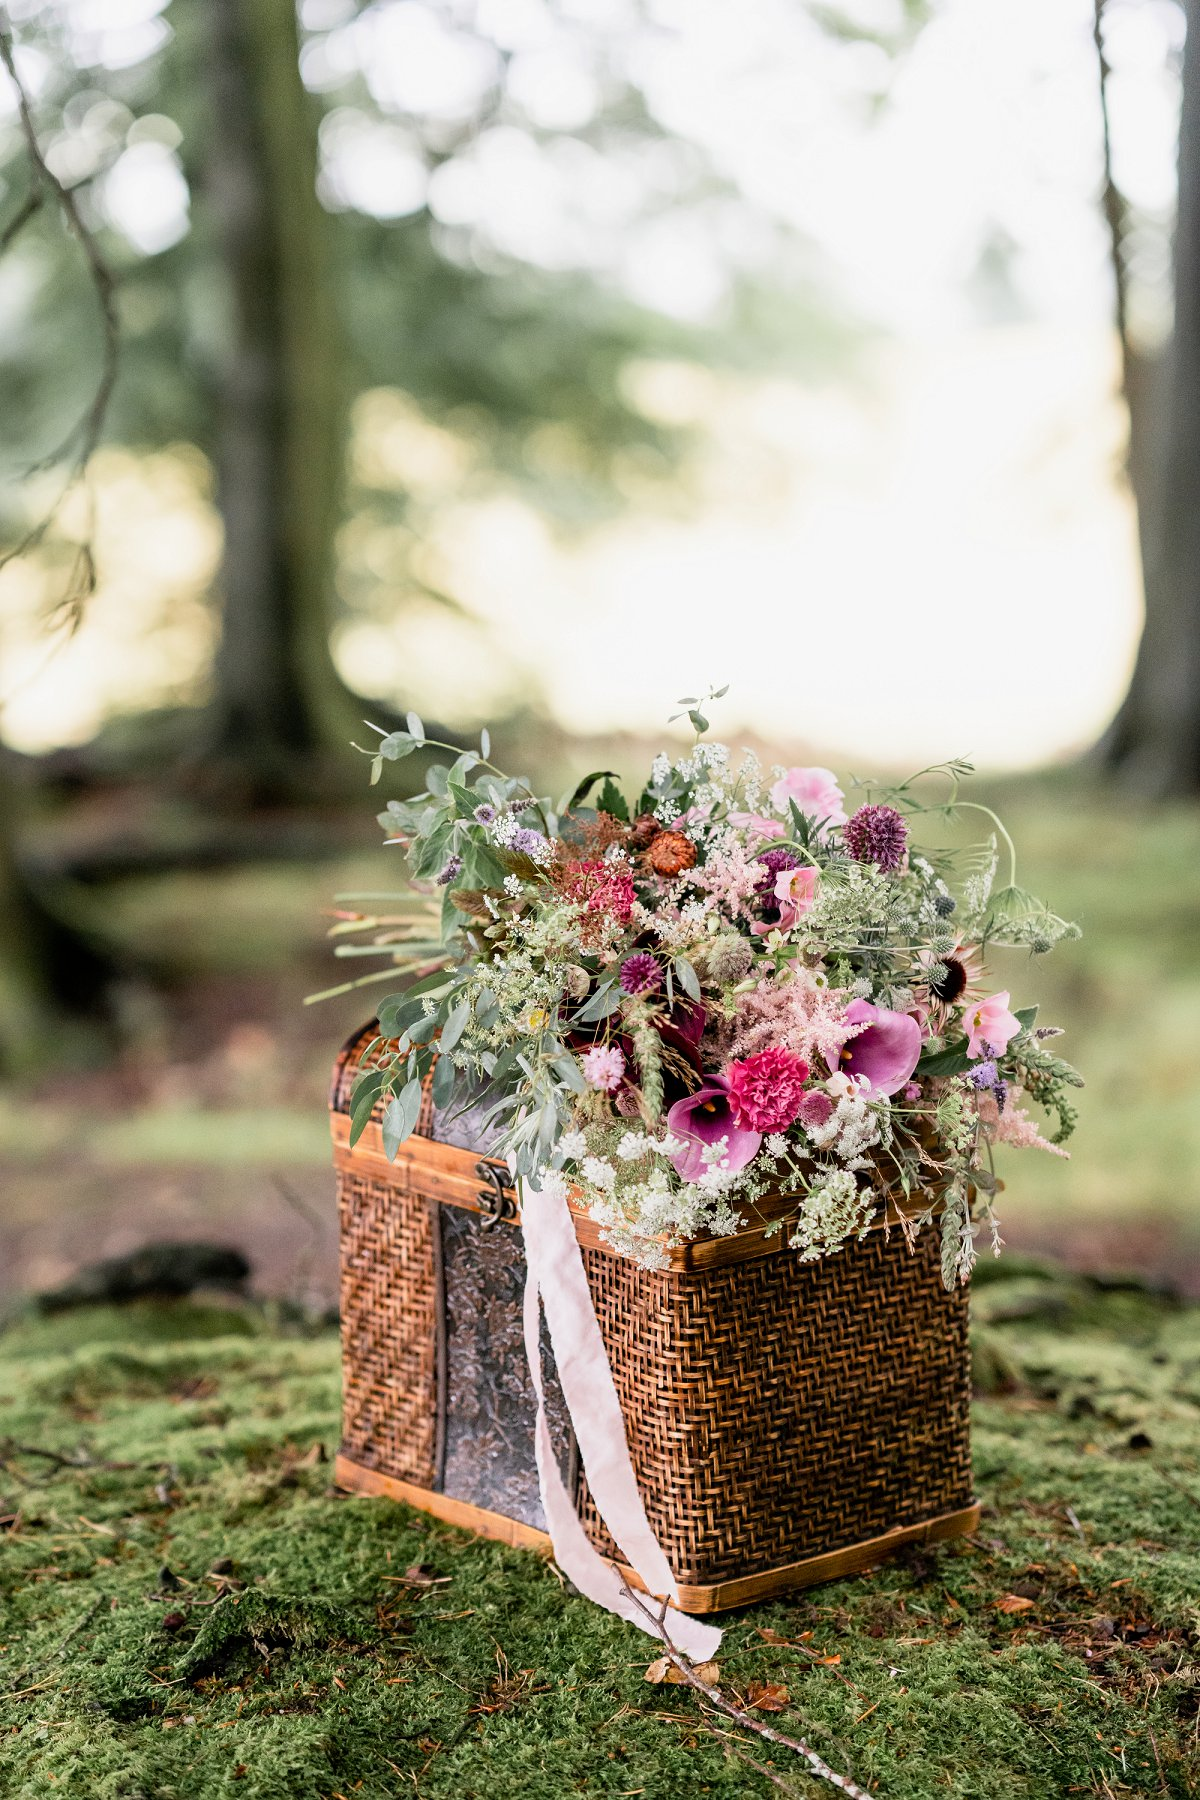 A Styled Woodland Wedding Shoot for Glorious By Heidi at Heaton House Farm (c) Charlotte Palazzo Photography (17)